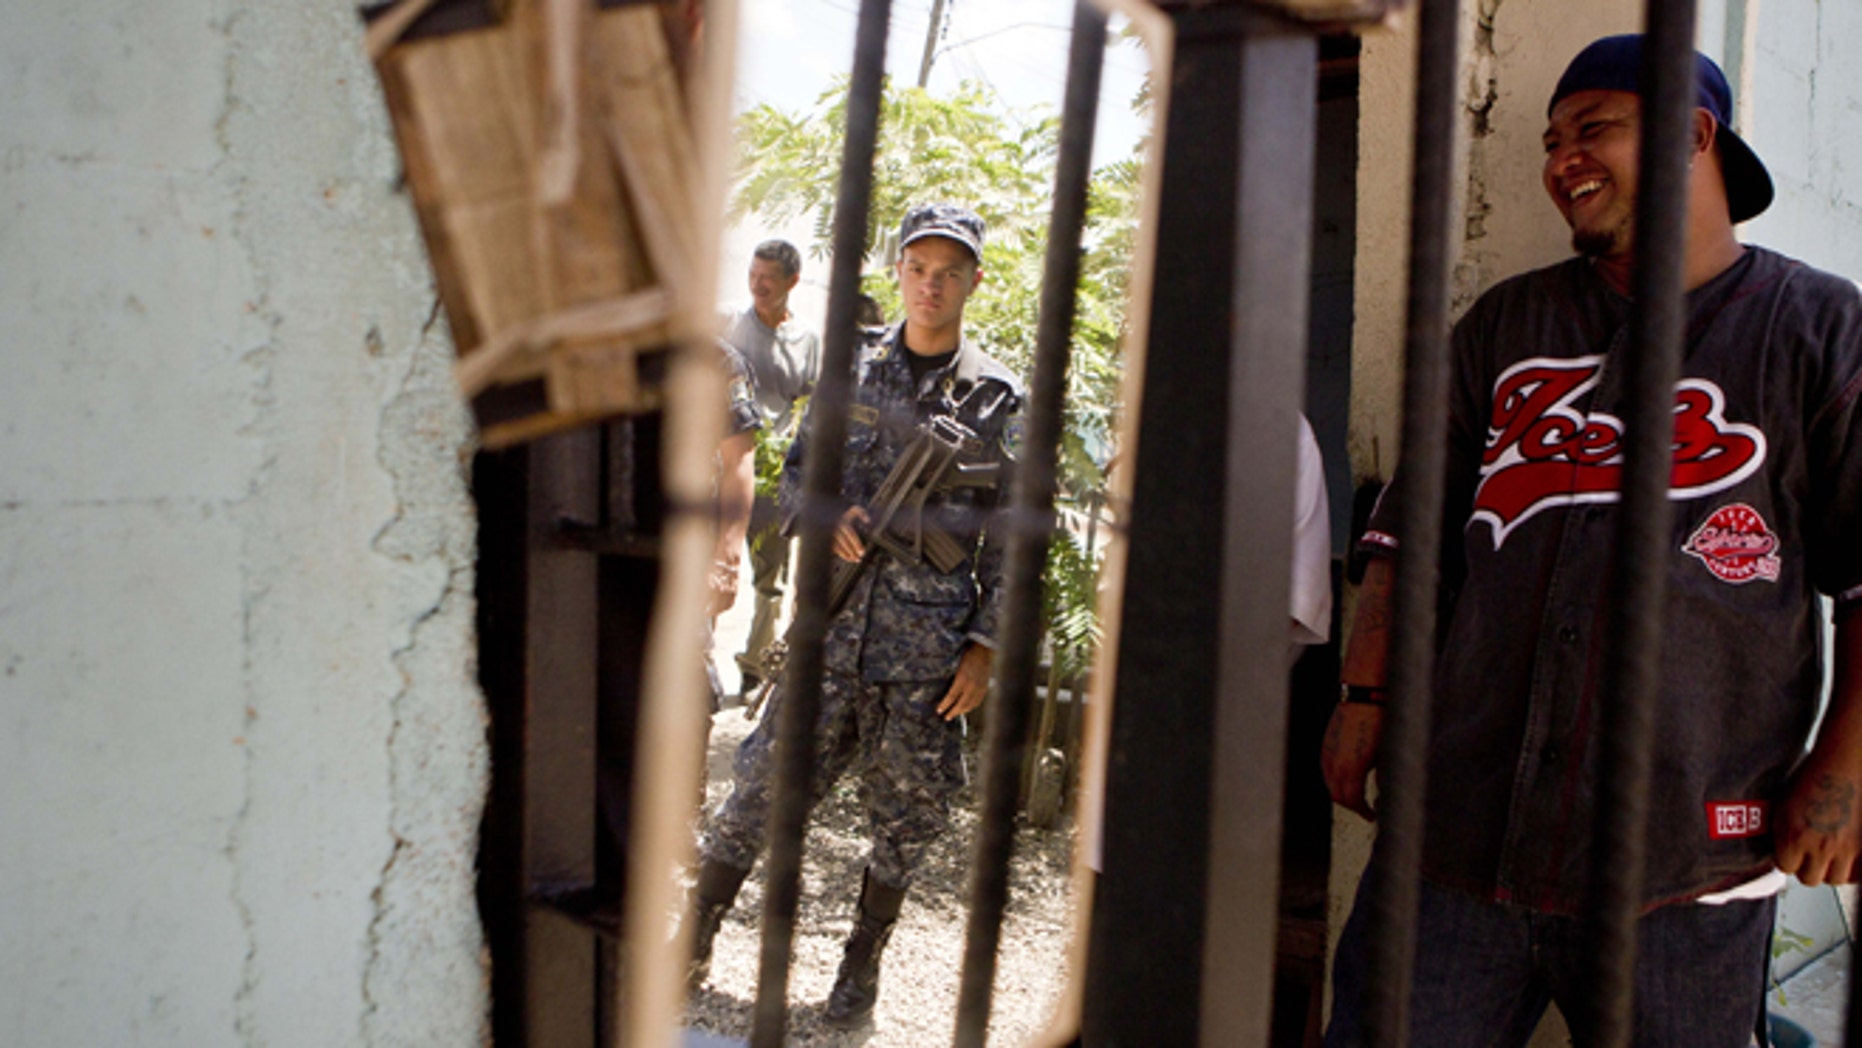 A National Police officer is reflected in a mirror hanging inside the area of gang members from the Mara Salvatrucha, MS, inside the San Pedro Sula prison in Honduras, Tuesday, May 28, 2013. Honduras' largest and most dangerous street gangs have declared a truce, offering the government peace in exchange for rehabilitation and jobs. A Mara Salvatrucha gang spokesman says the gang and its rival, 18th Street, will commit to zero violence and zero crime in the streets as first step show of good faith. (AP Photo/Esteban Felix)